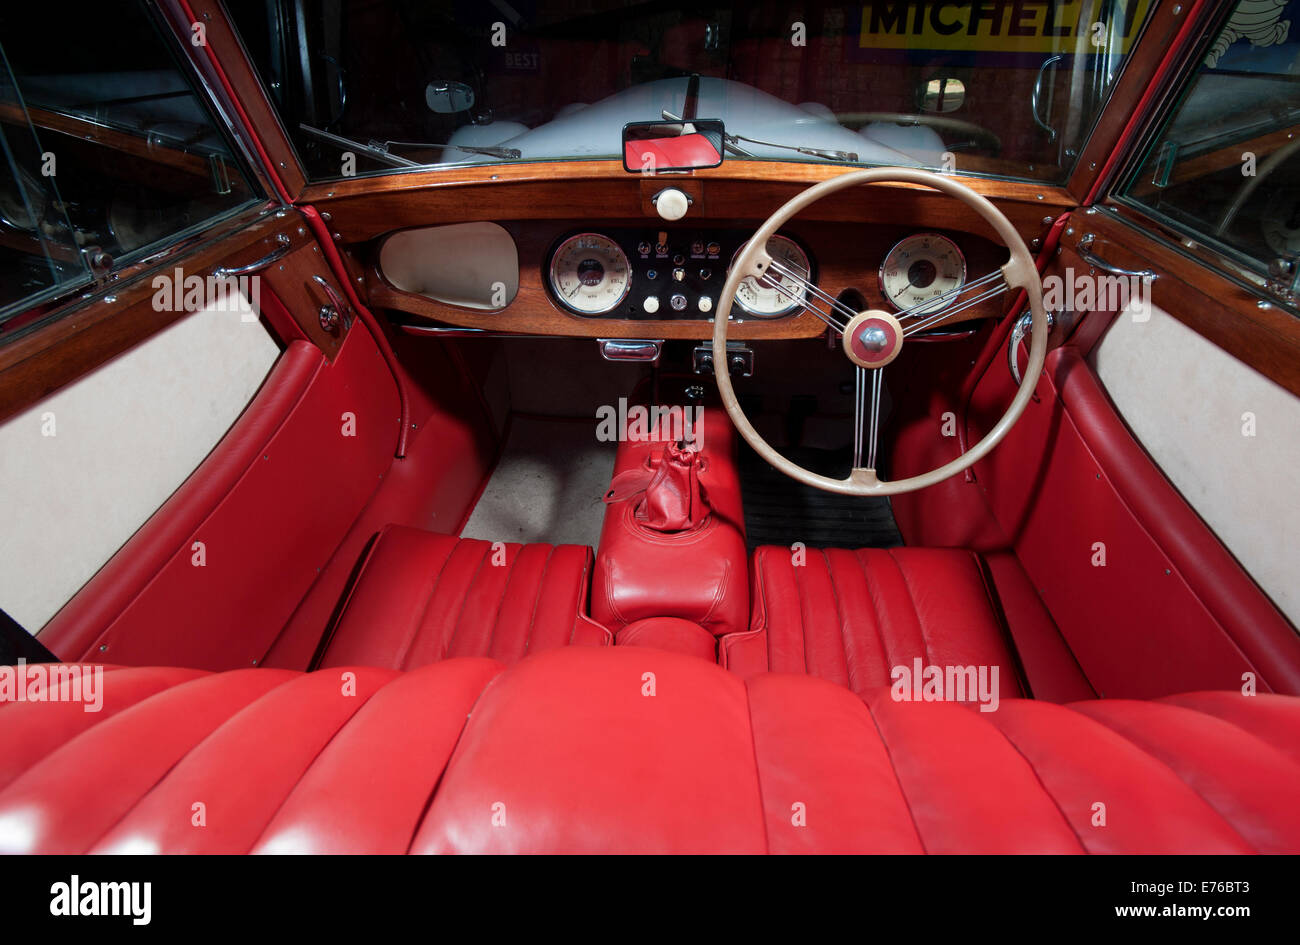 morgan plus 4 classic british sports car interior stock photo royalty free image 73285075 alamy. Black Bedroom Furniture Sets. Home Design Ideas